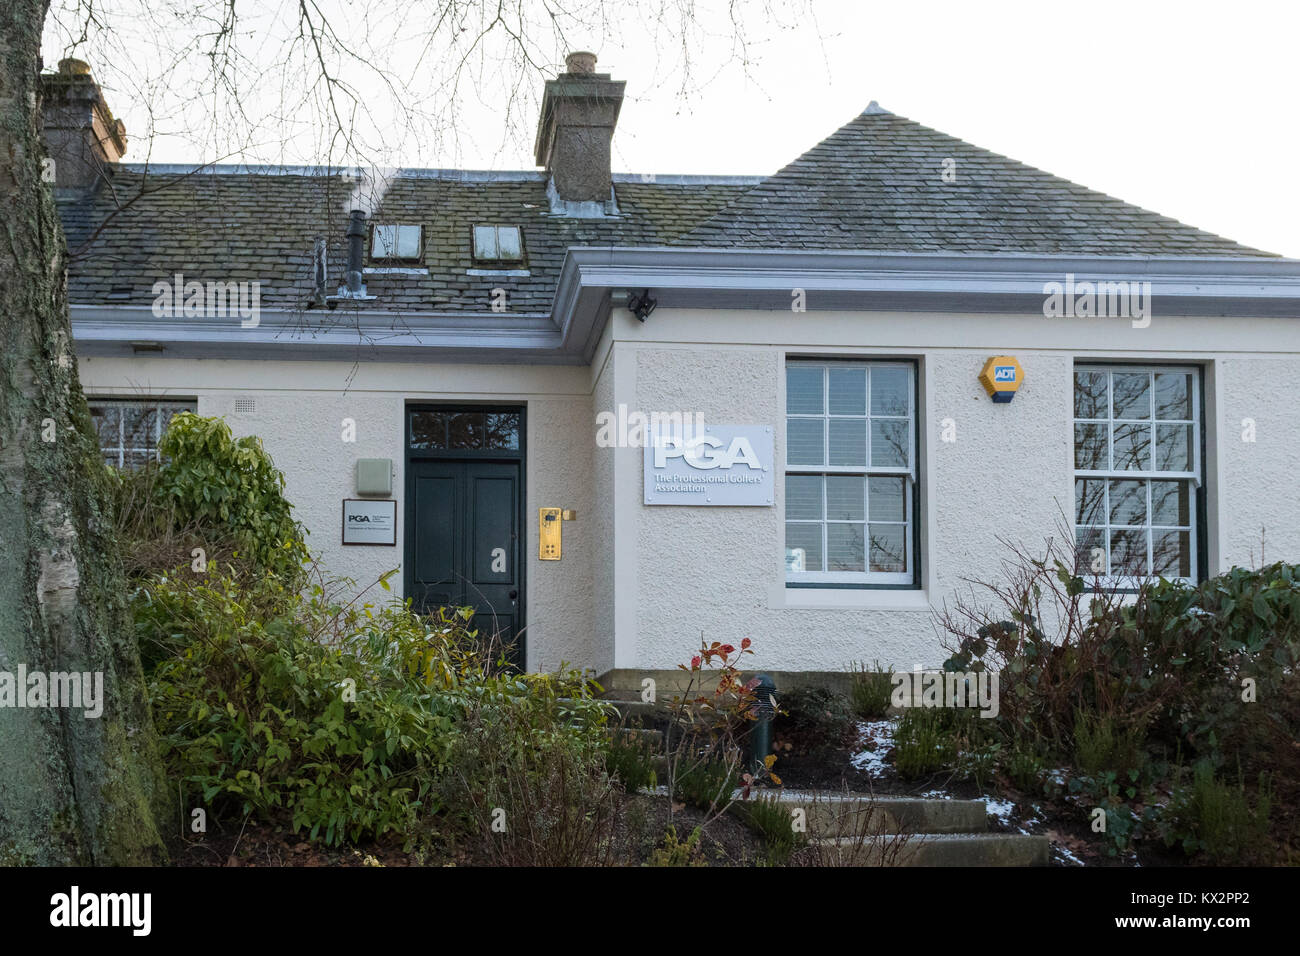 The PGA - Professional Golfers' Association headquarters at Gleneagles, Scotland, UK - Stock Image